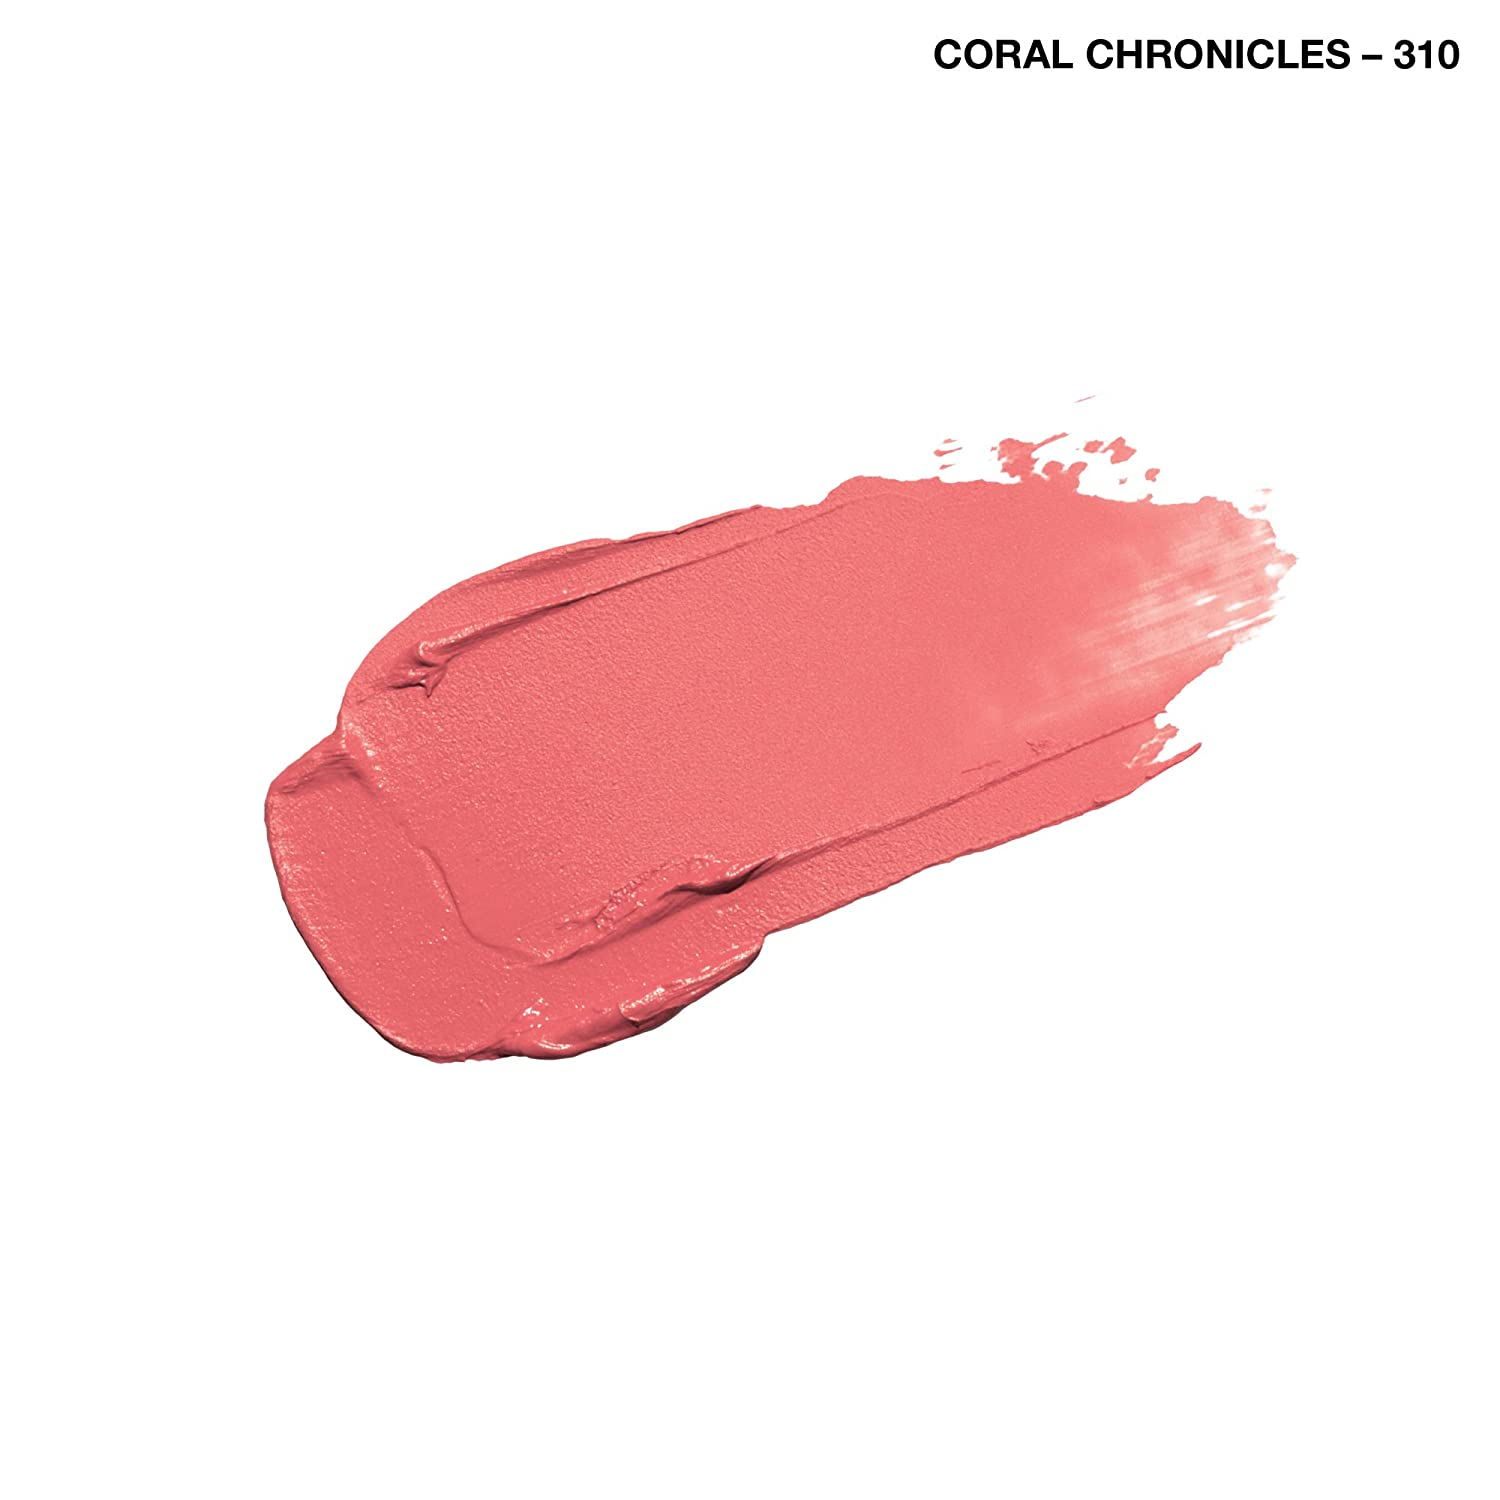 Amazoncom Covergirl Melting Pout Matte Liquid Lipstick, Coral Chronicles, 011